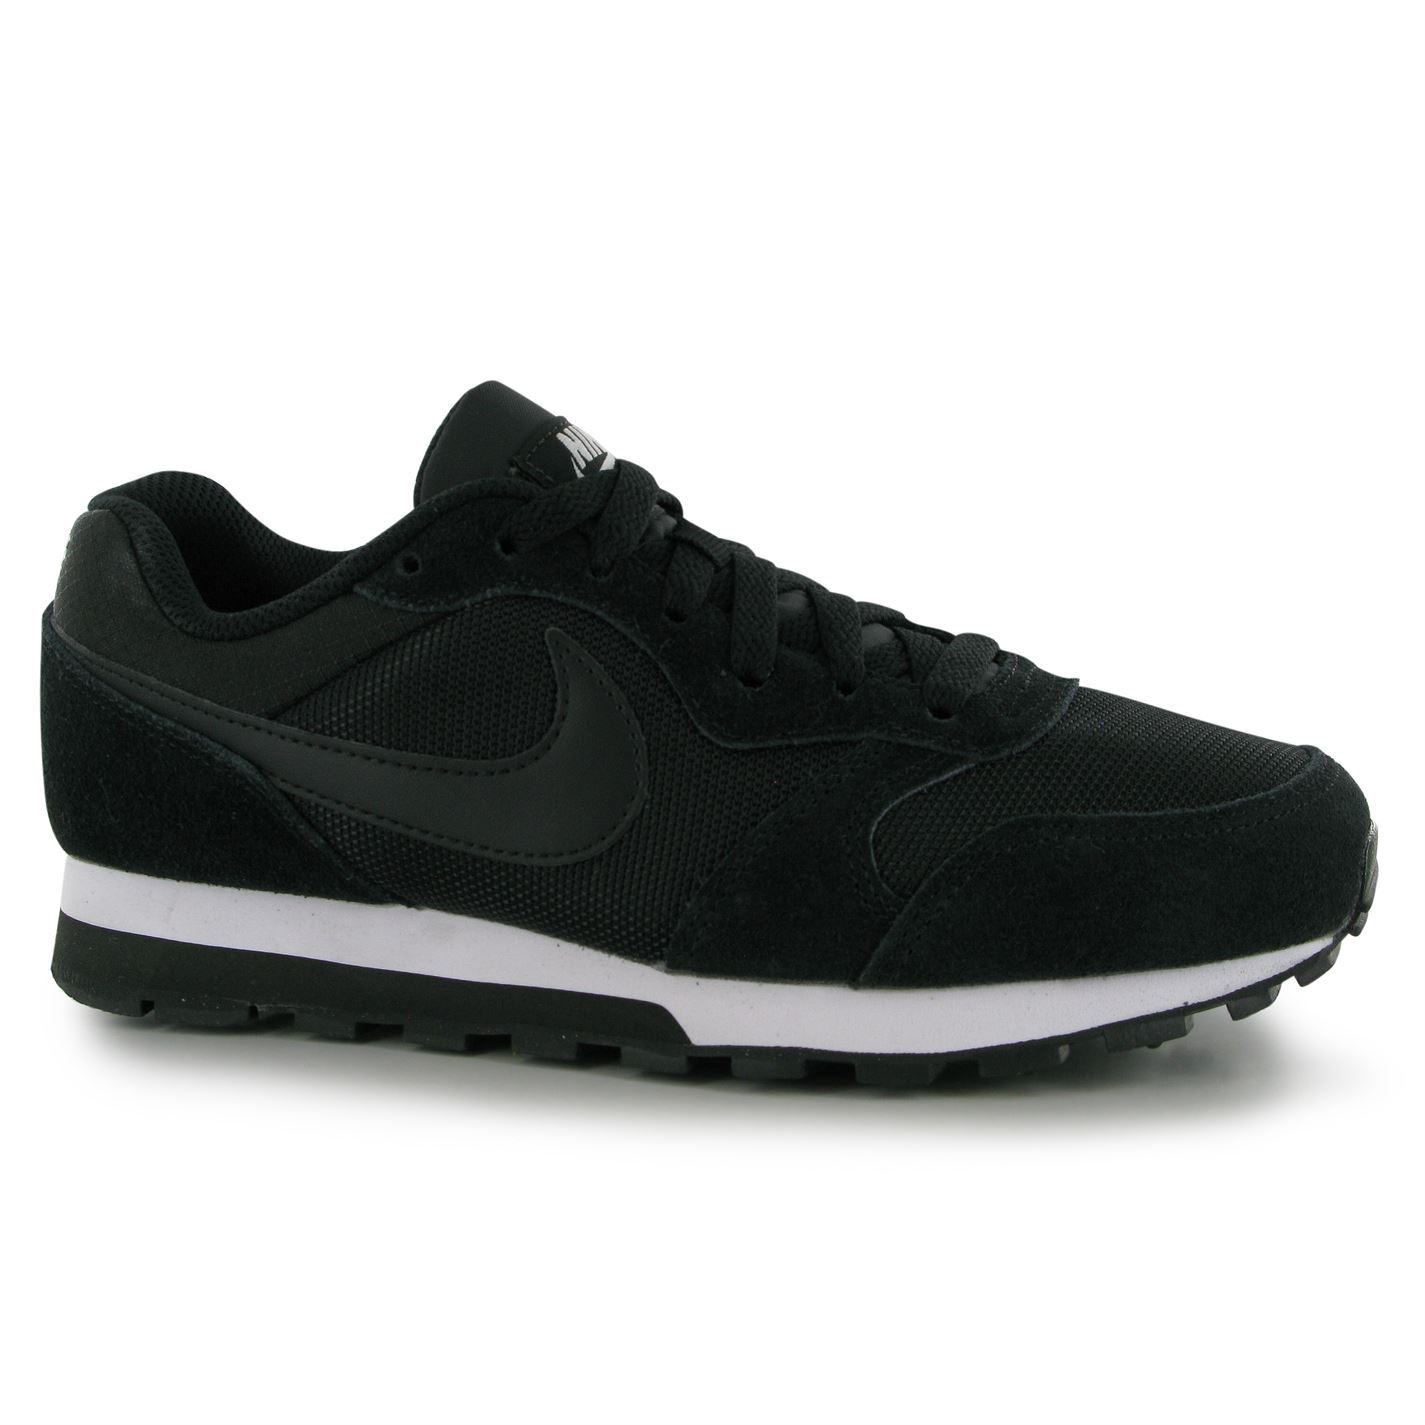 Details about Nike MD Runner Trainers Womens BlackWhite Casual Fashion Sneakers Shoes